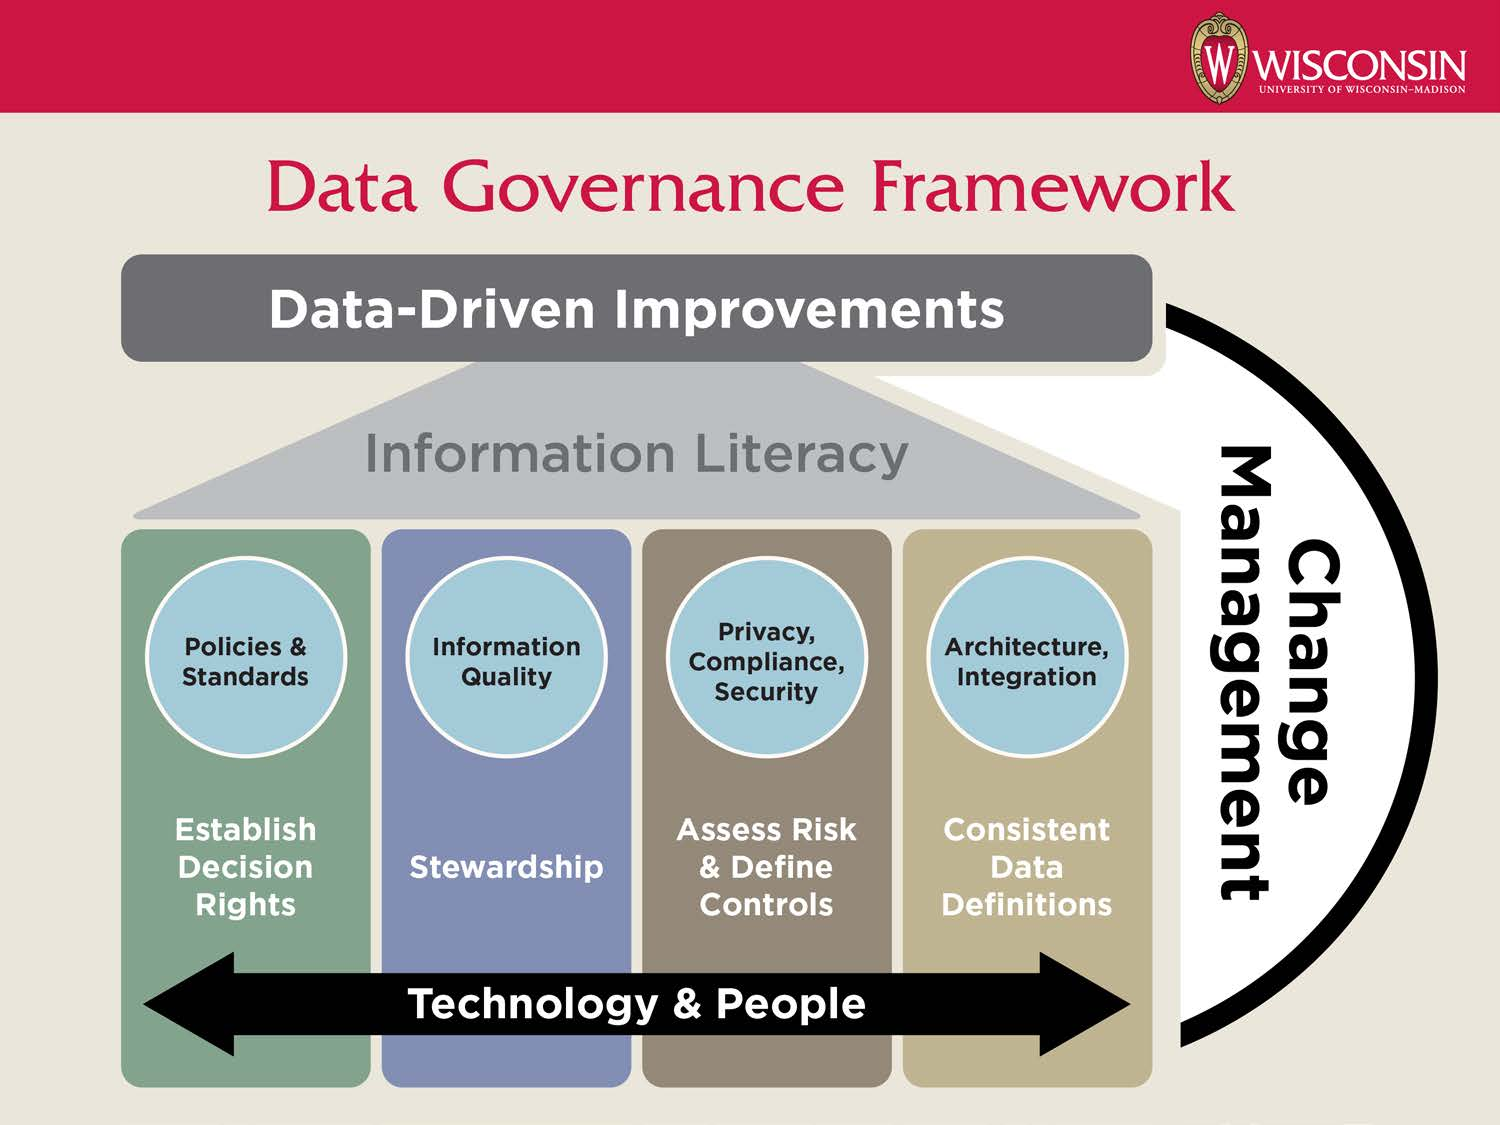 Data Governance Framework - Data at UW-Madison